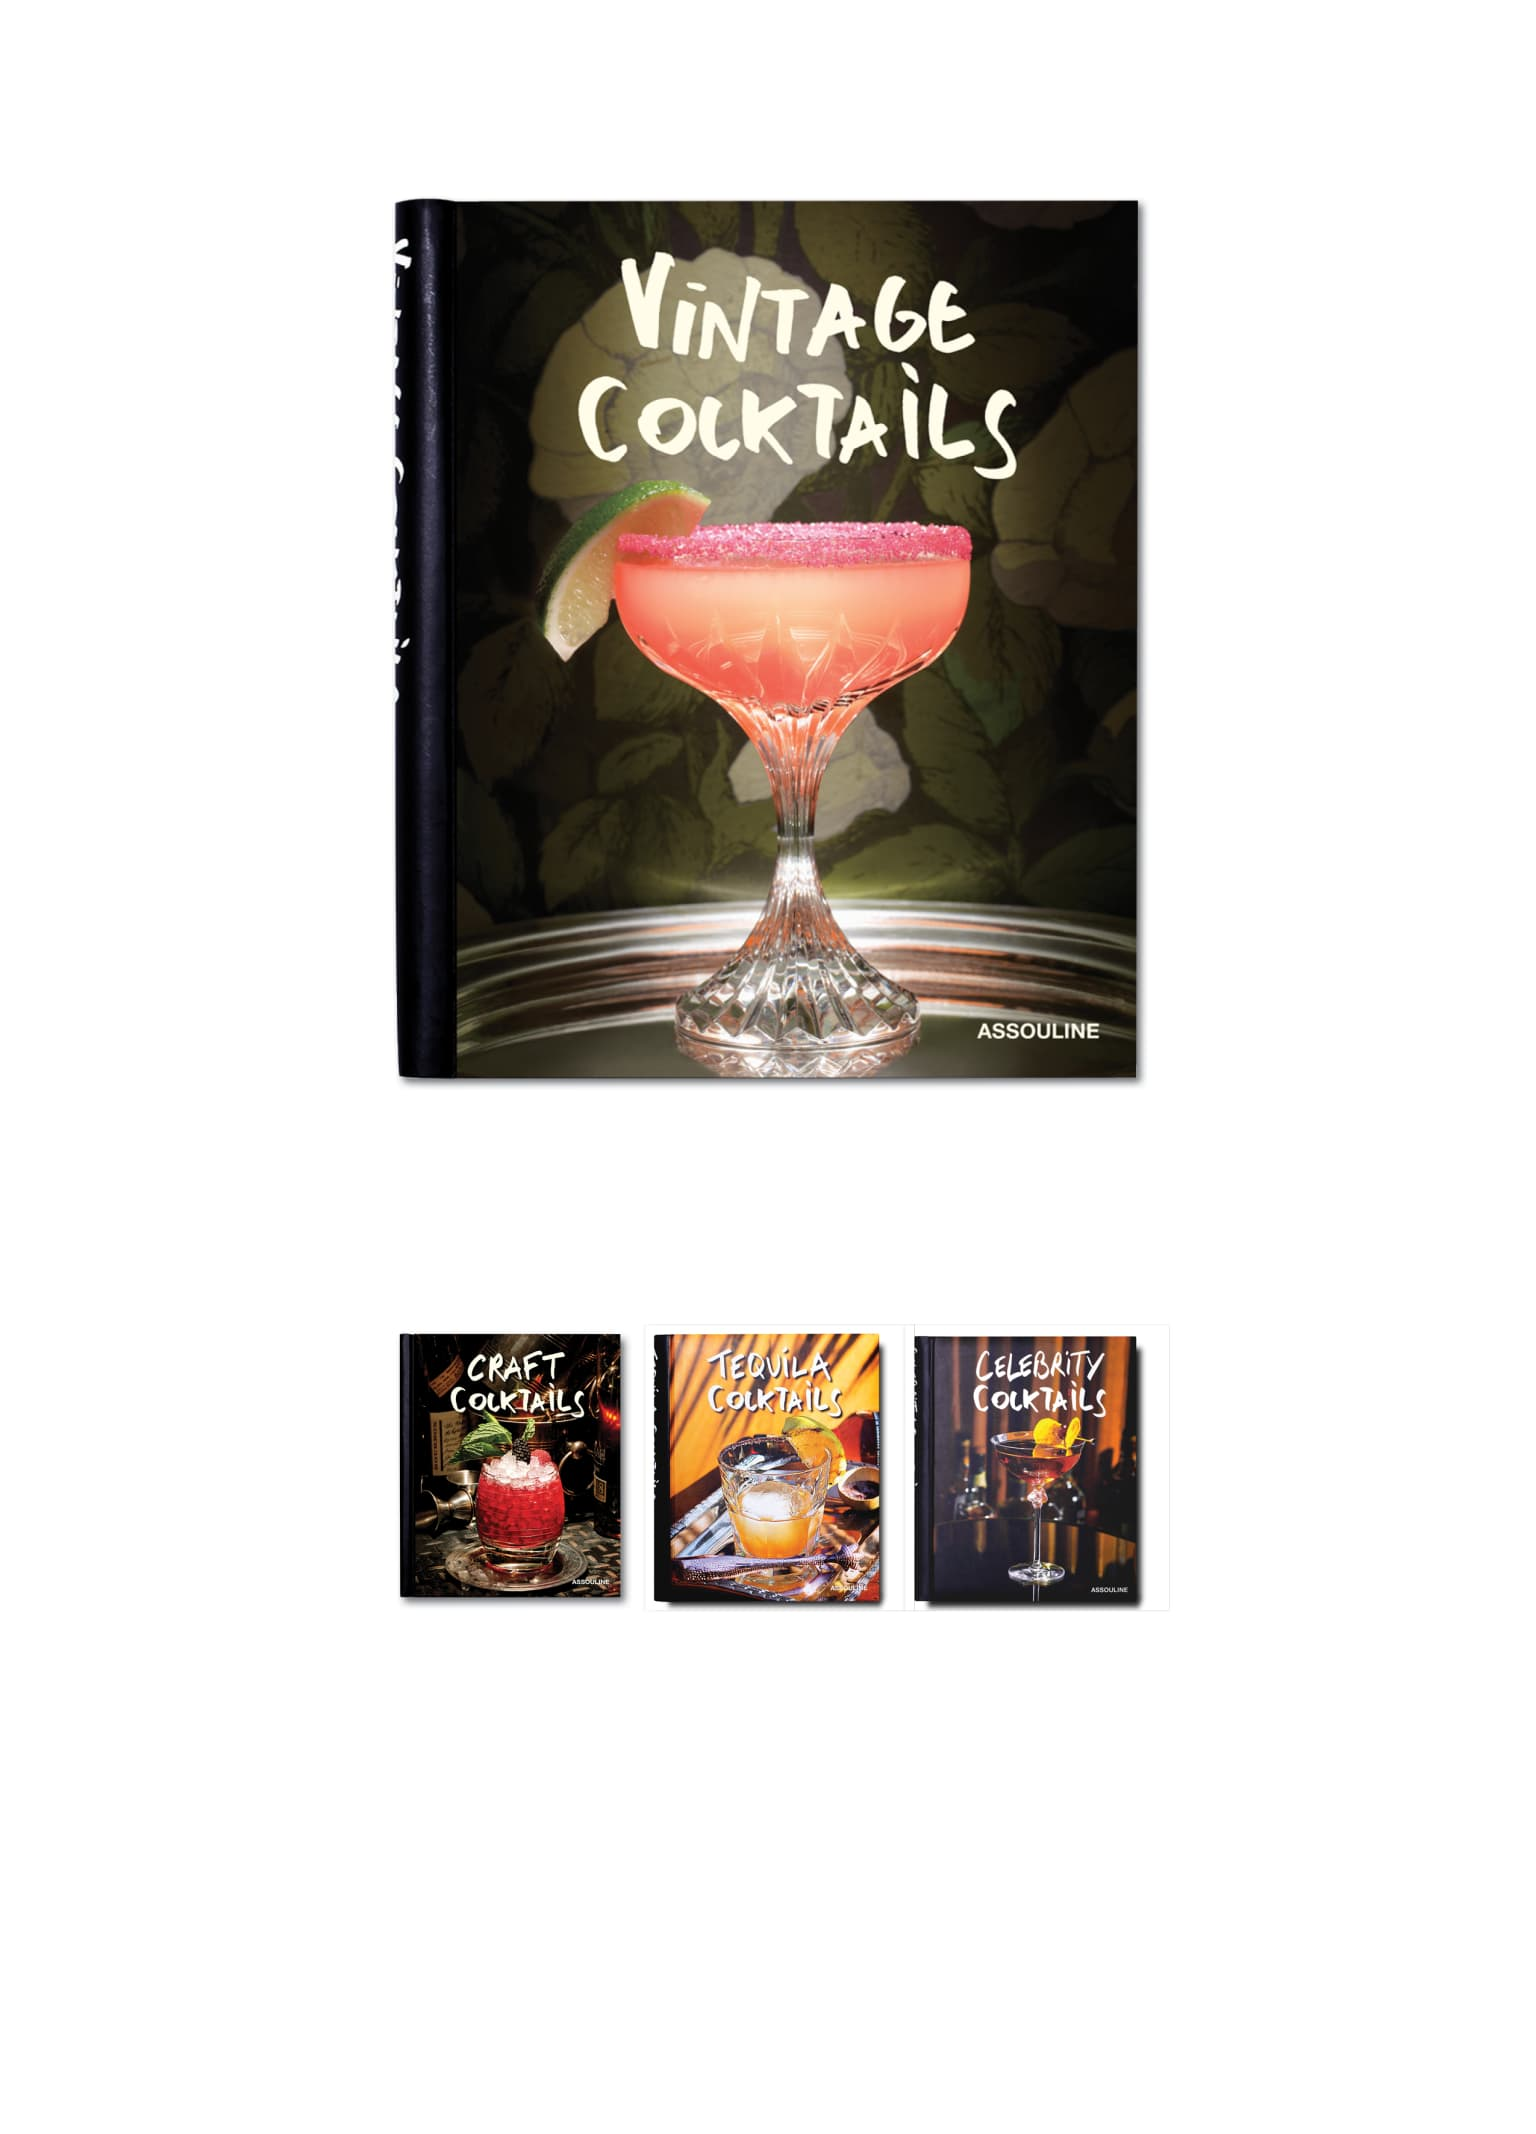 Awards winning Cocktail books collection